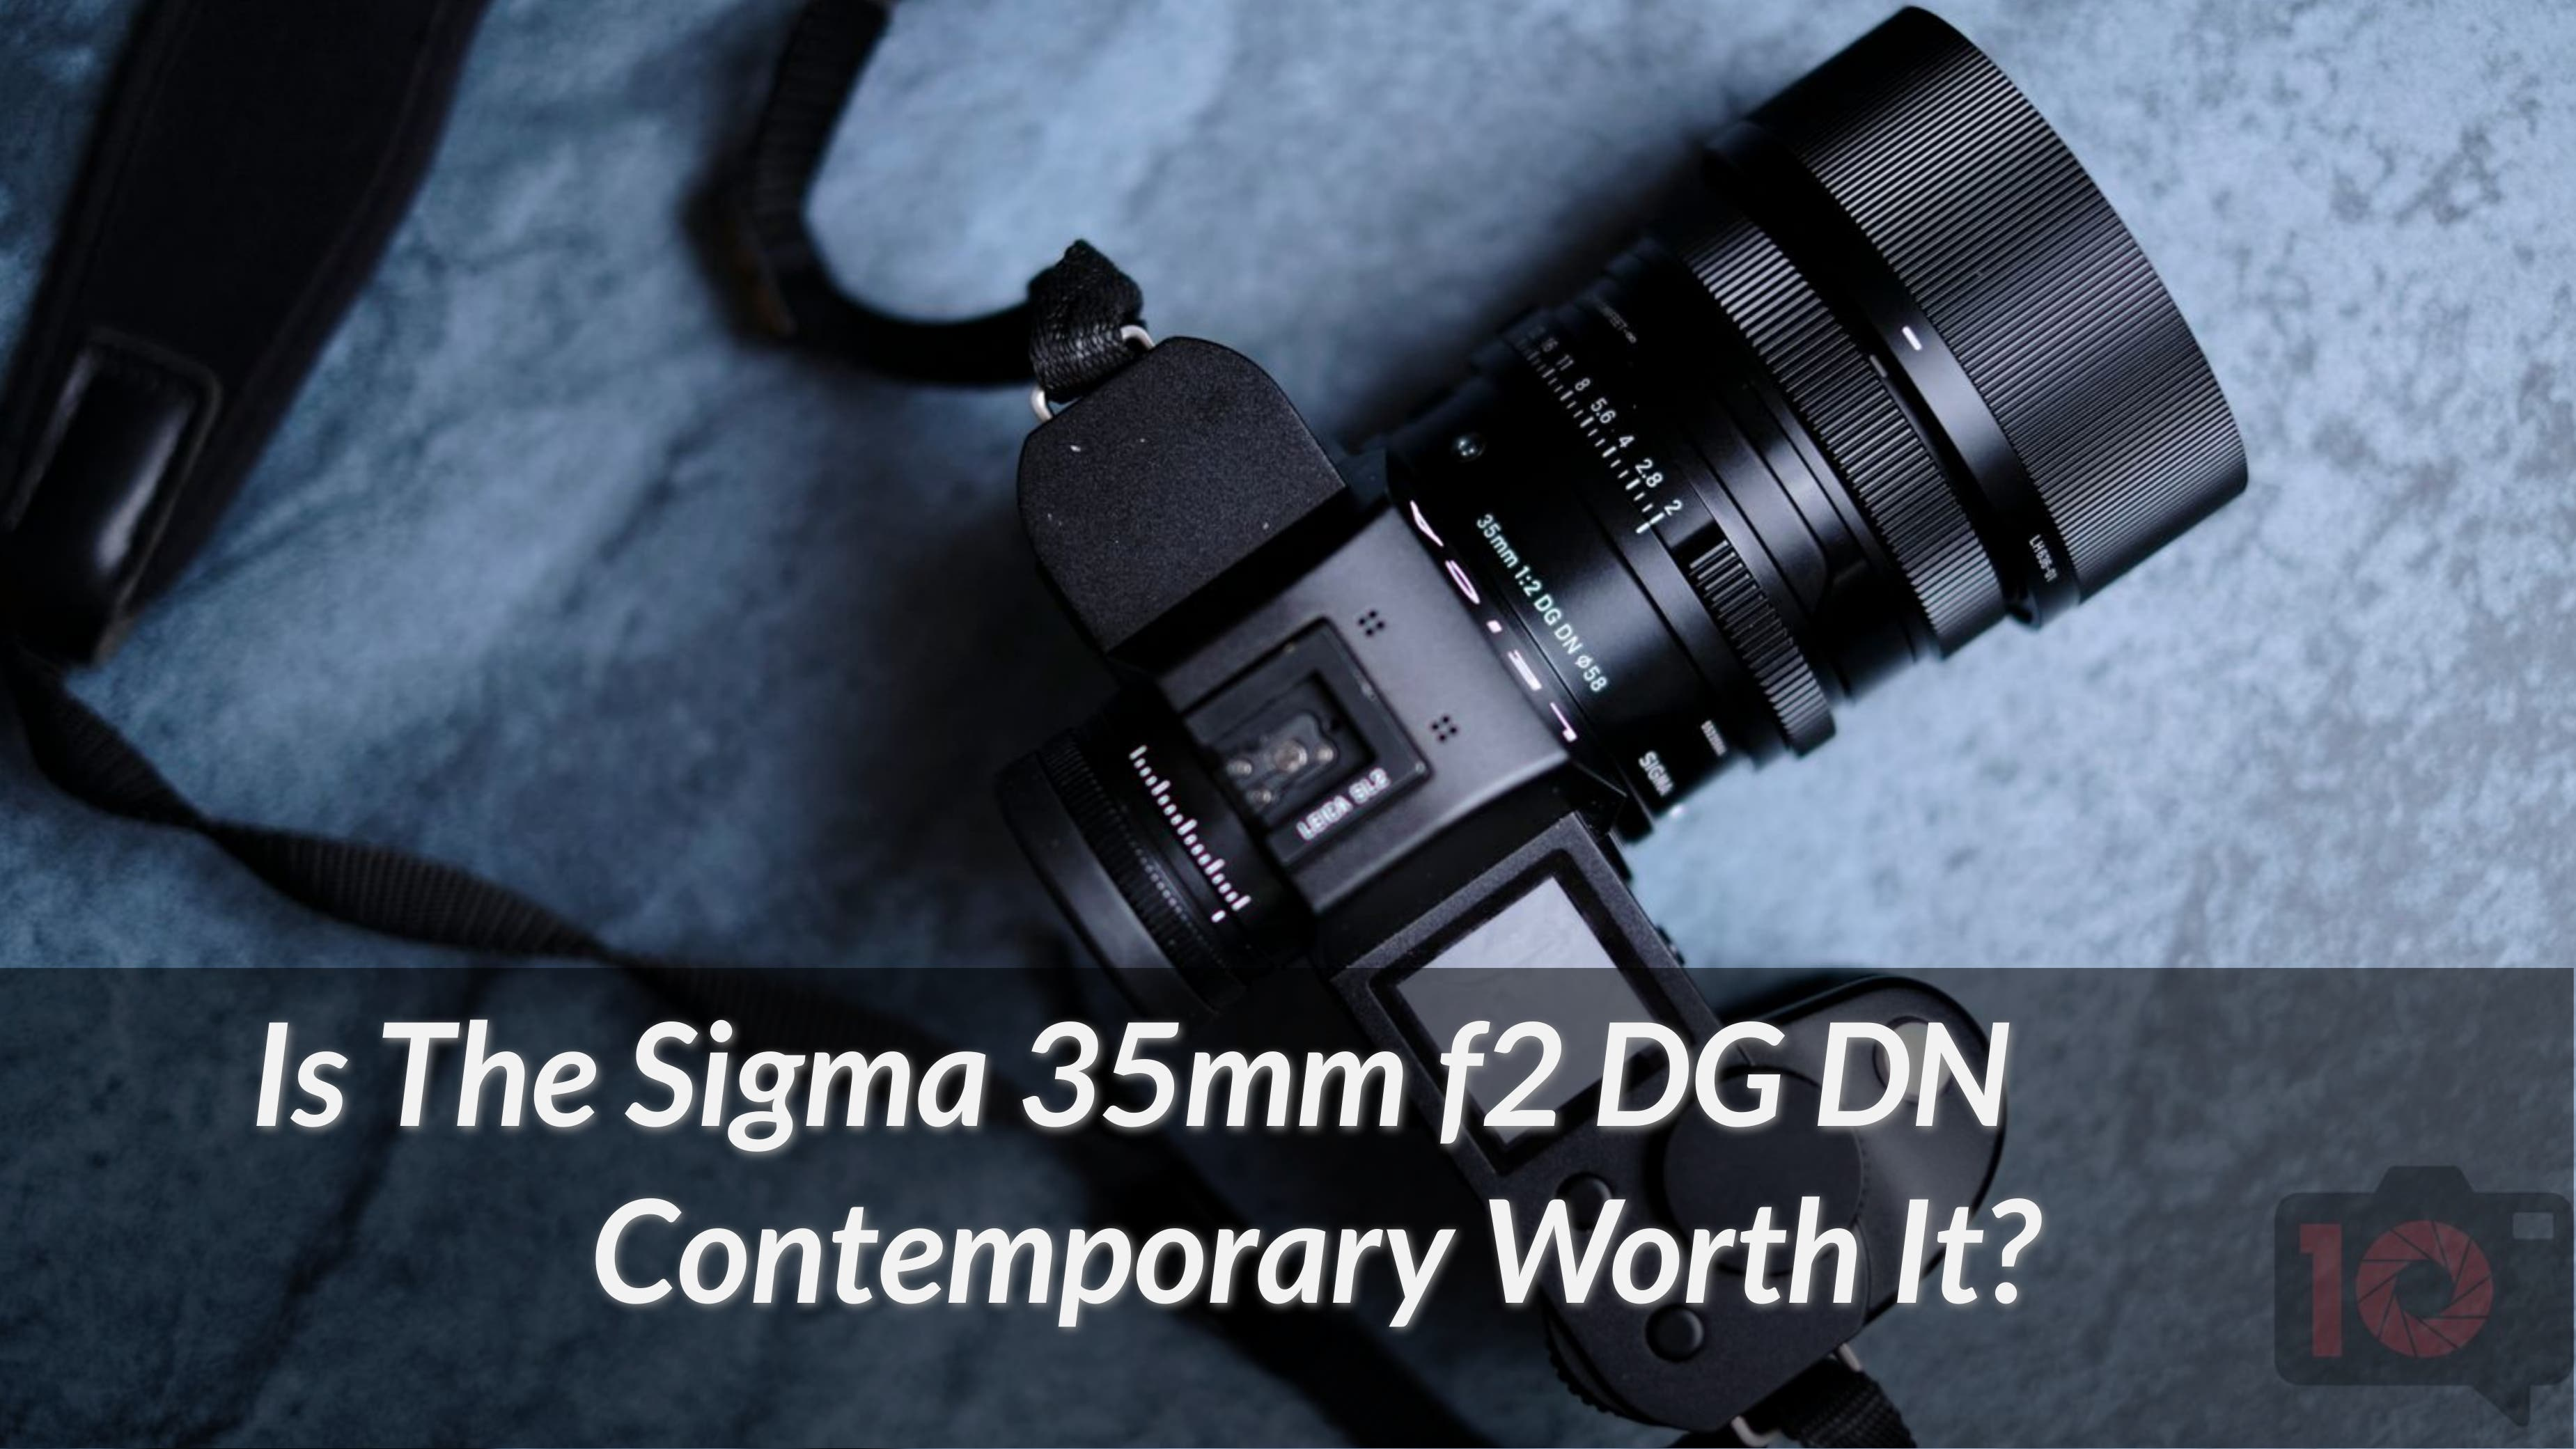 Is The Sigma 35mm f2 DG DN Contemporary Worth It?